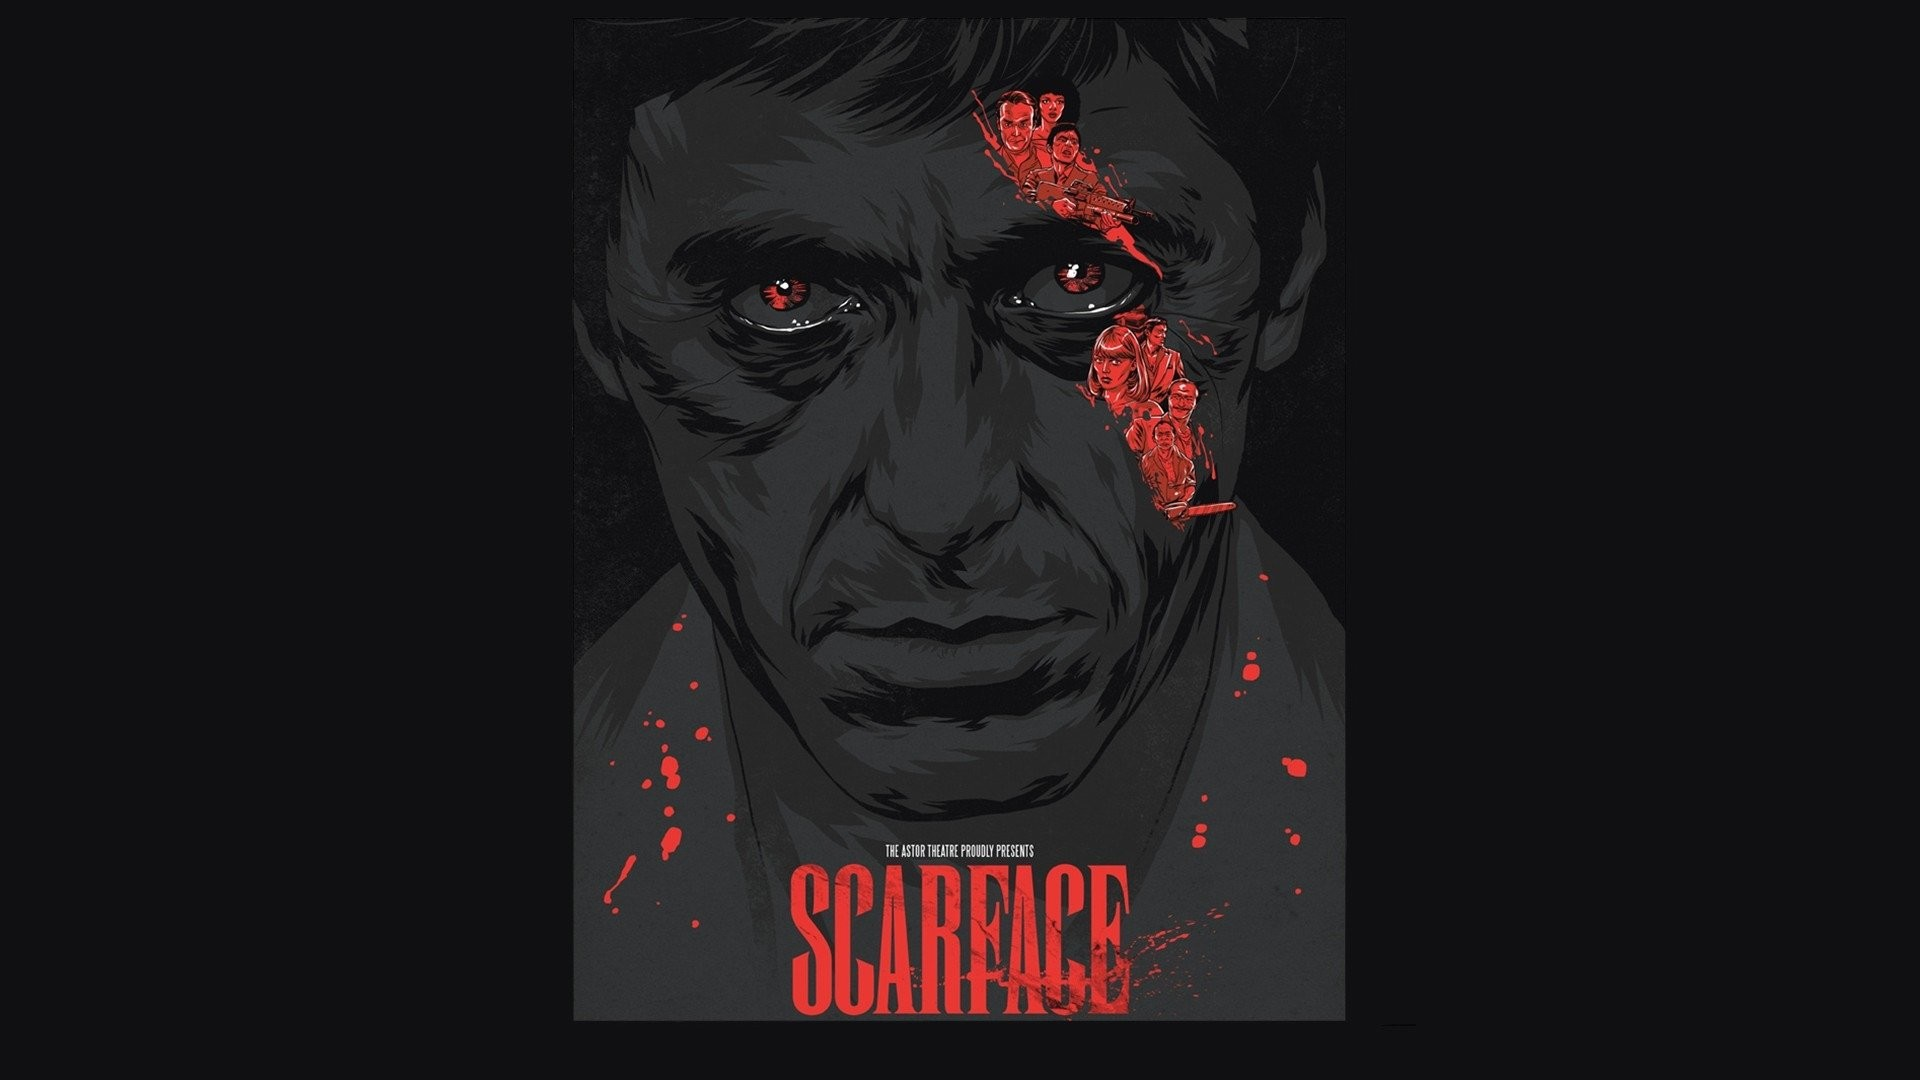 Scarface hd wallpapers wallpapertag - Scarface background ...